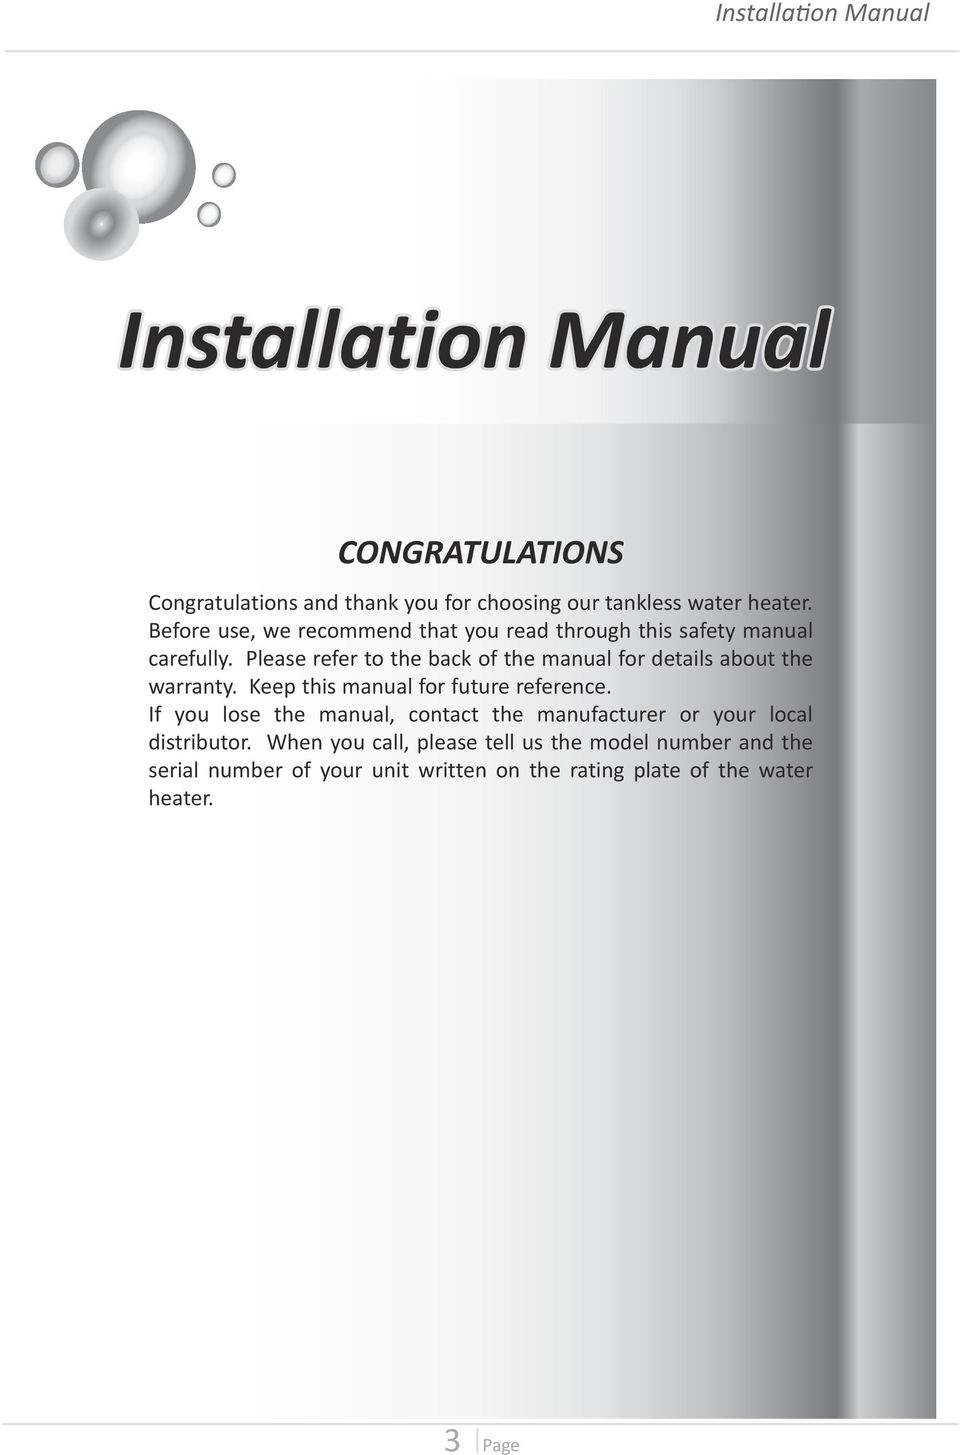 Please refer to the back of the manual for details about the warranty. Keep this manual for future reference.